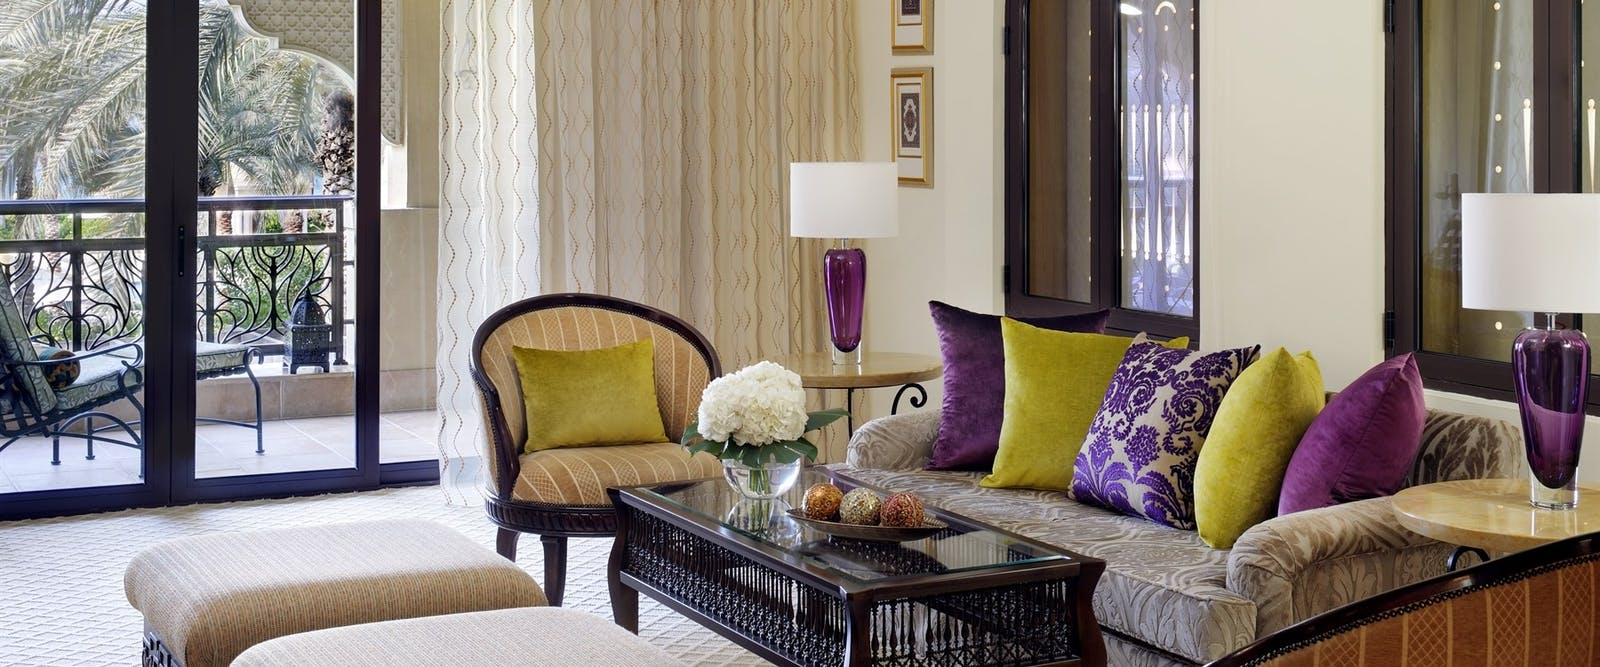 Executive Suite Living Room at One&Only Royal Mirage - The Residence & Spa, Dubai